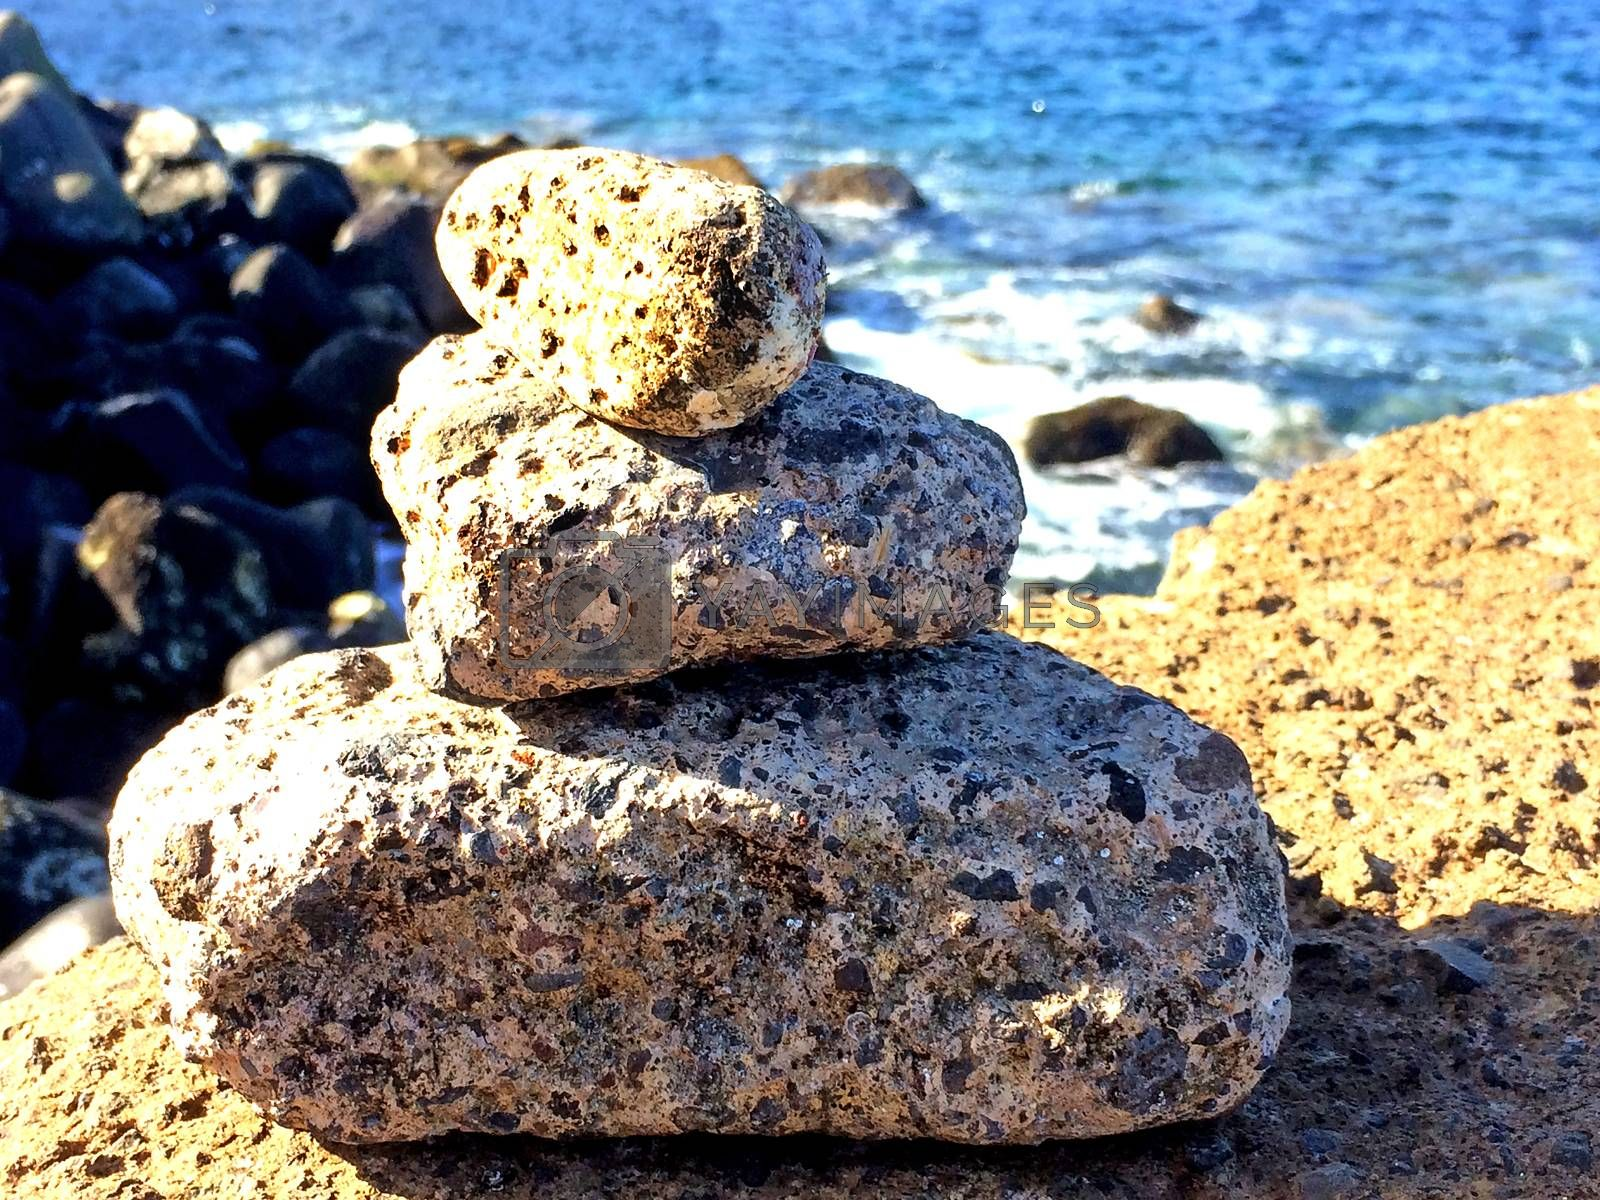 Zen stones on a rock near the atlantic ocean by bremse